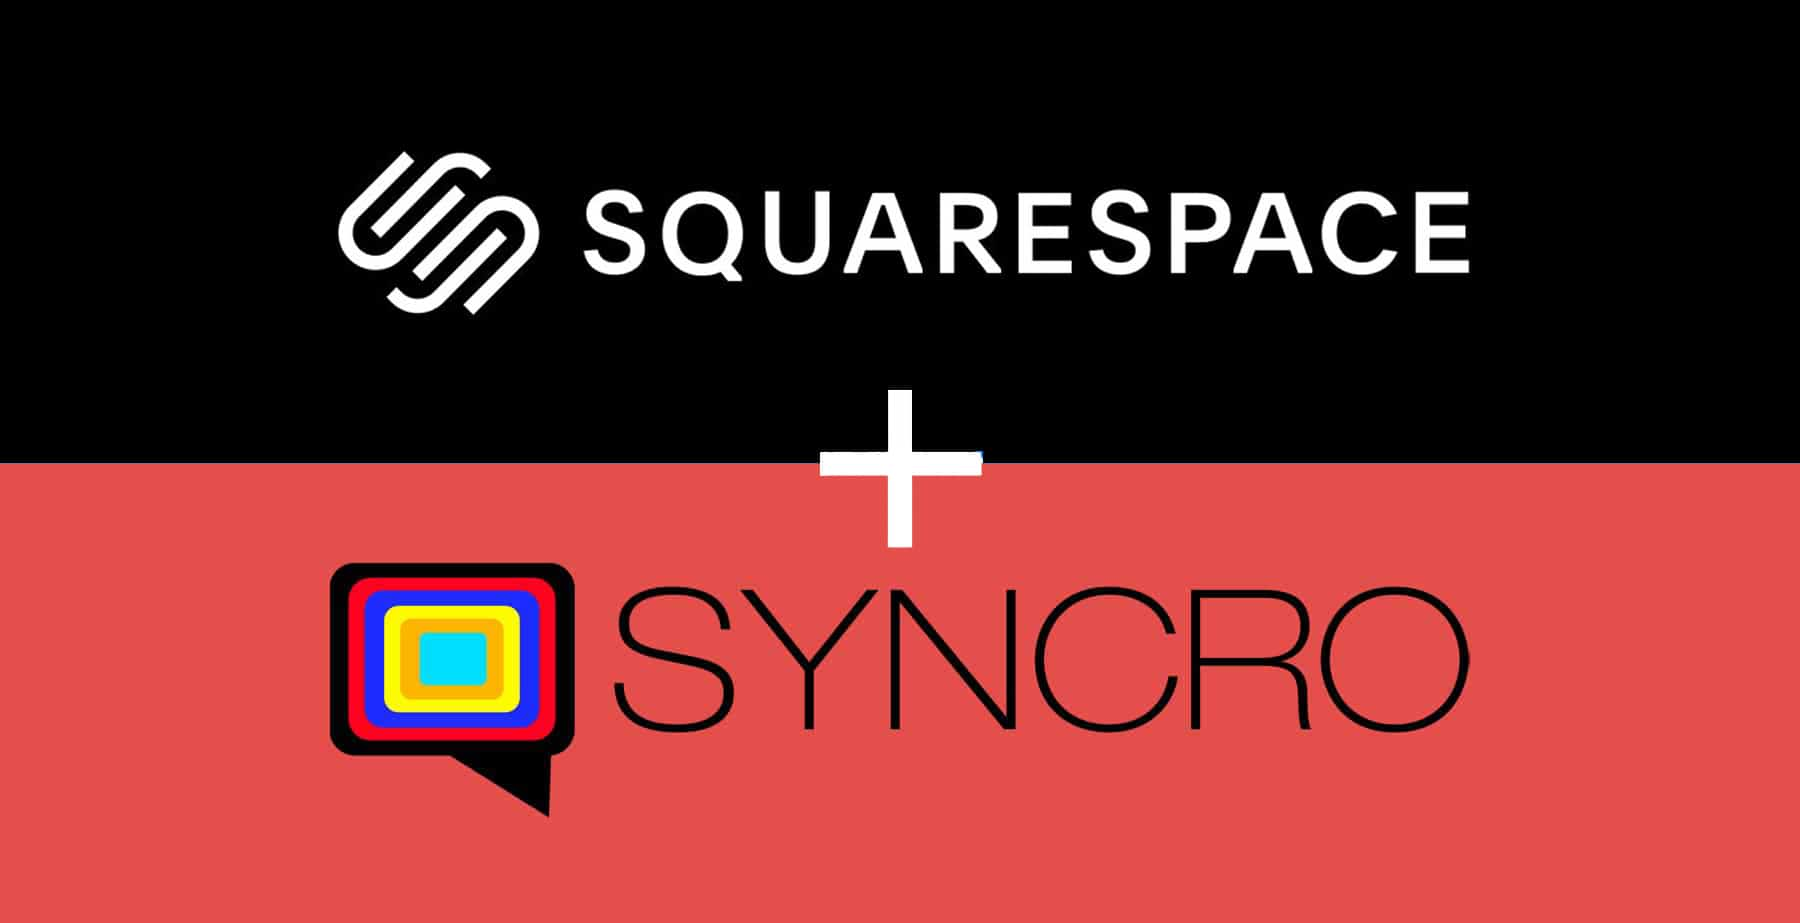 Live chat software for Squarespace – Installation Instructions